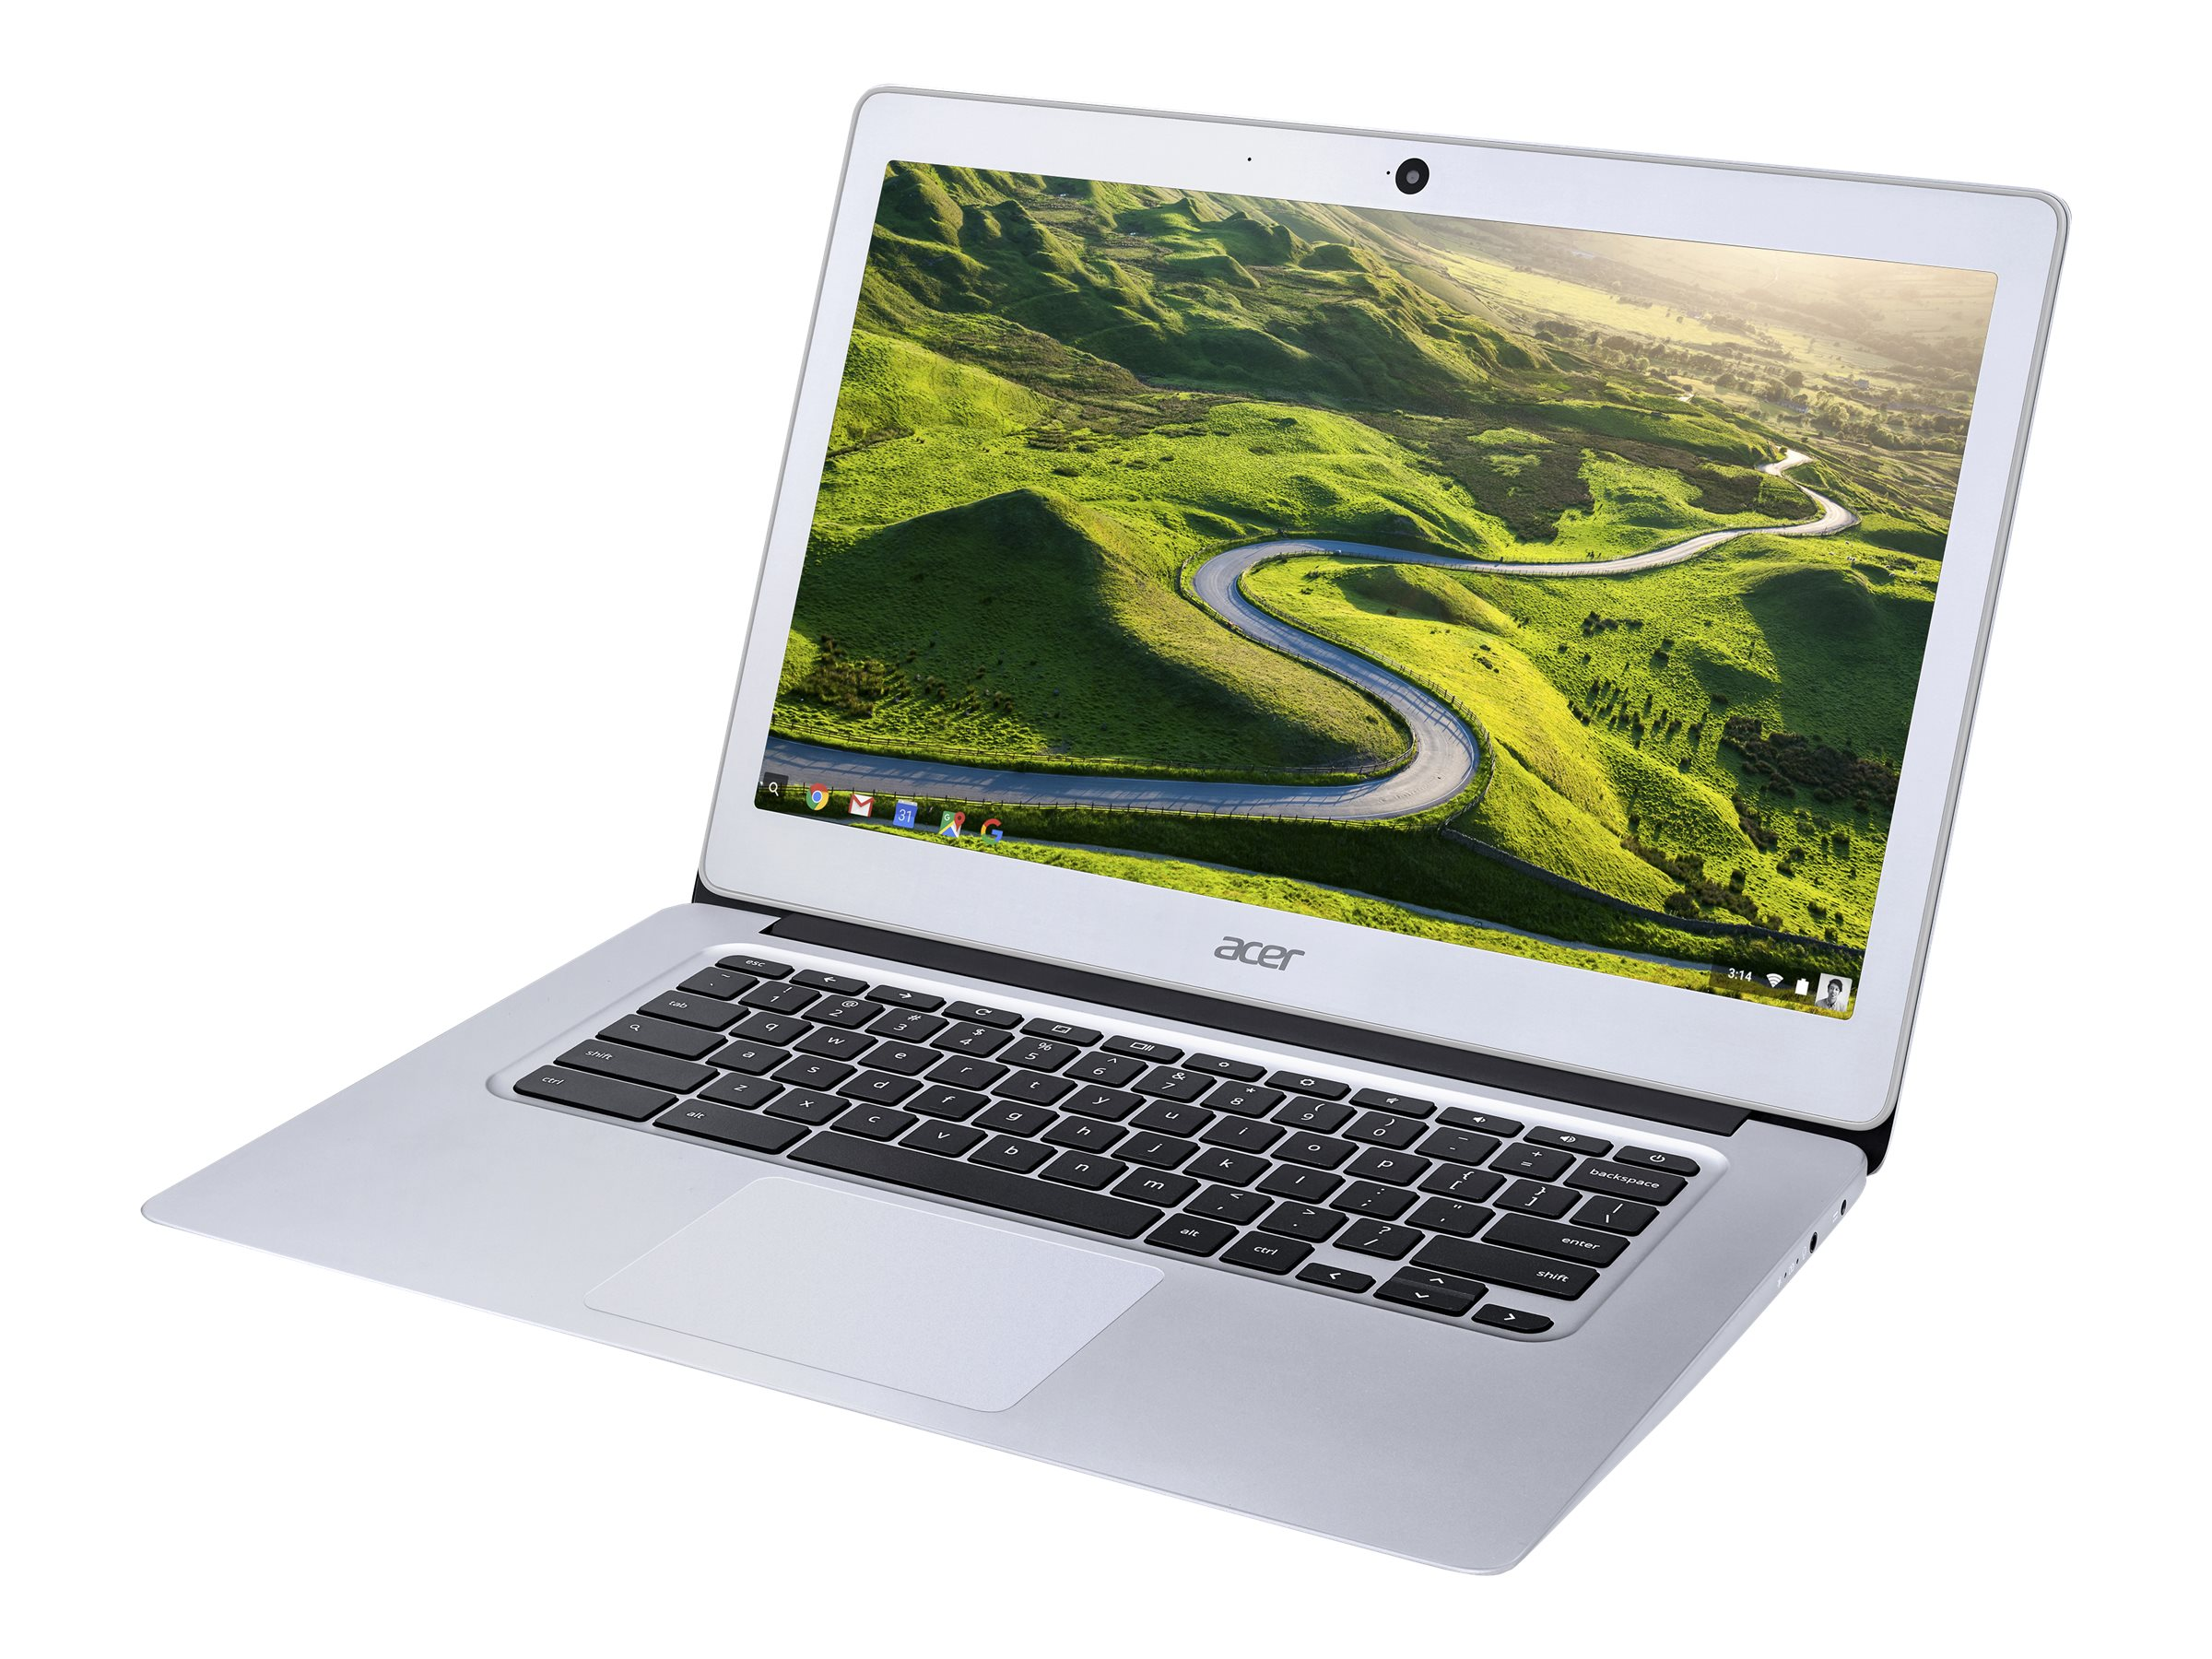 Acer Chromebook 14 CB3-431-C0D0 1.6GHz Celeron 14in display, NX.GC2AA.009